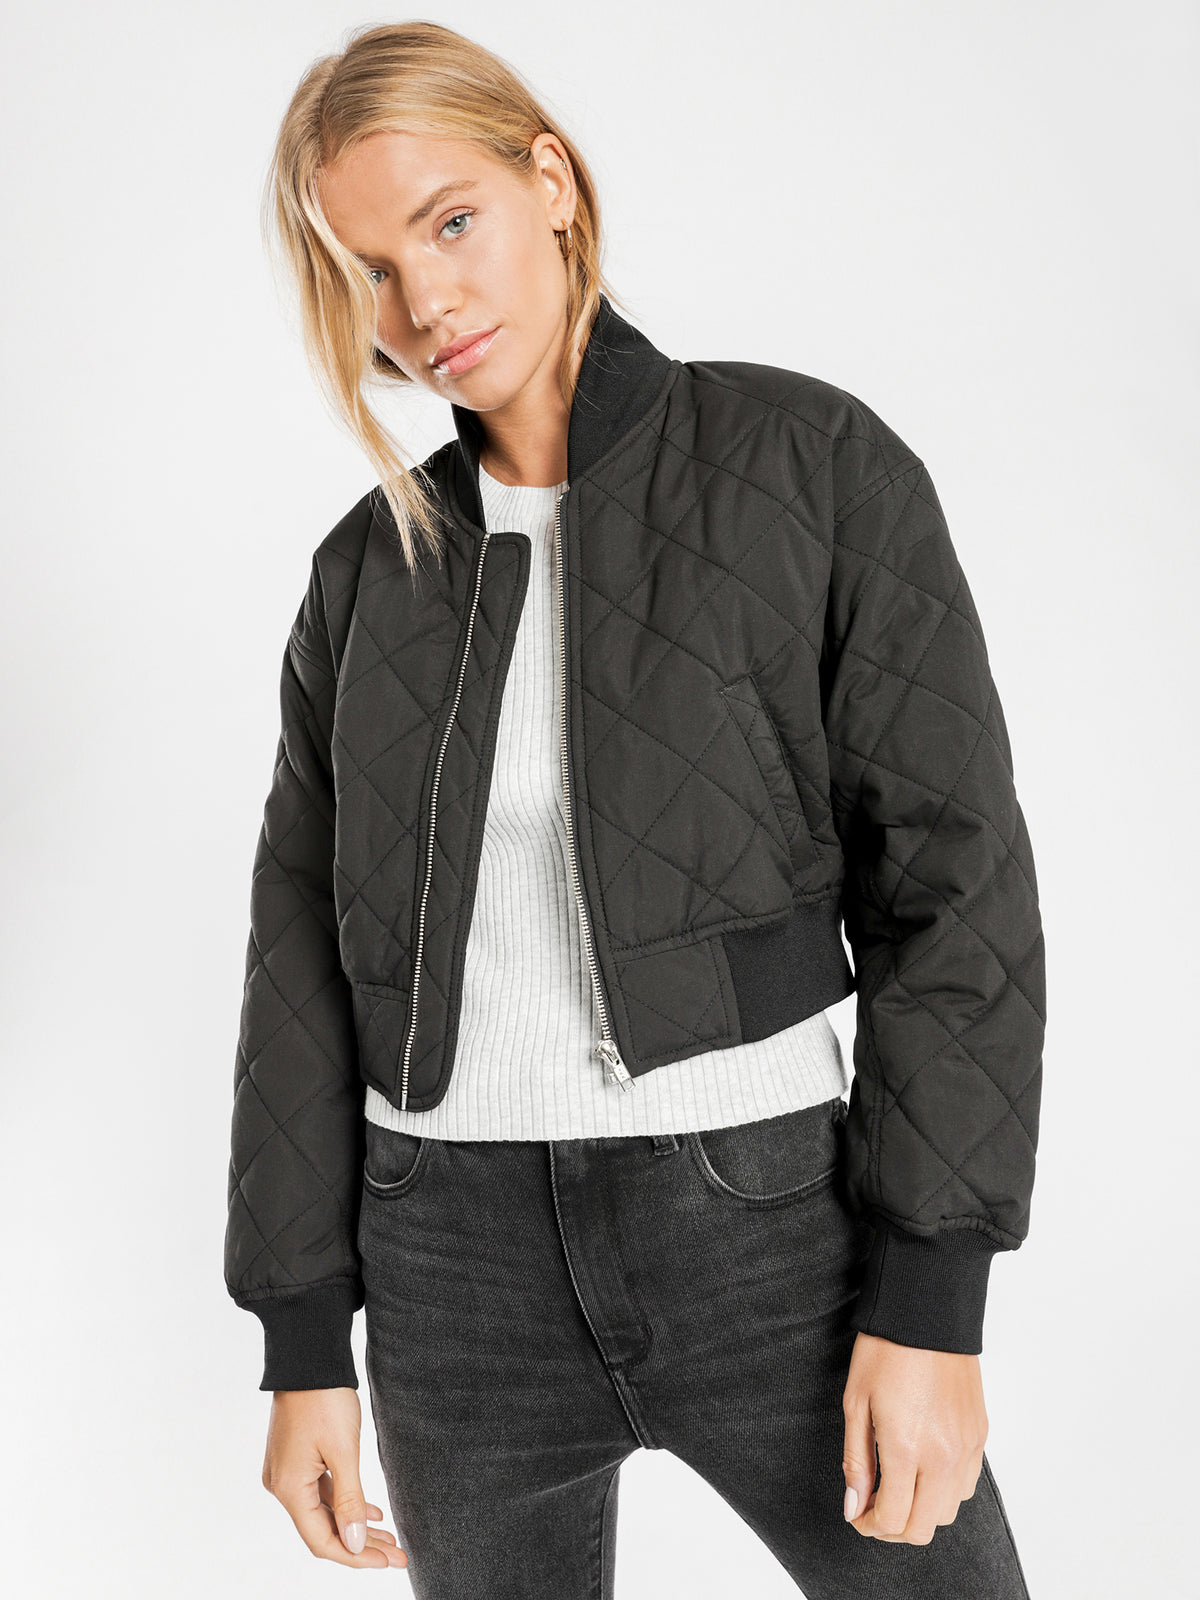 Classic Bomber Jacket in Black